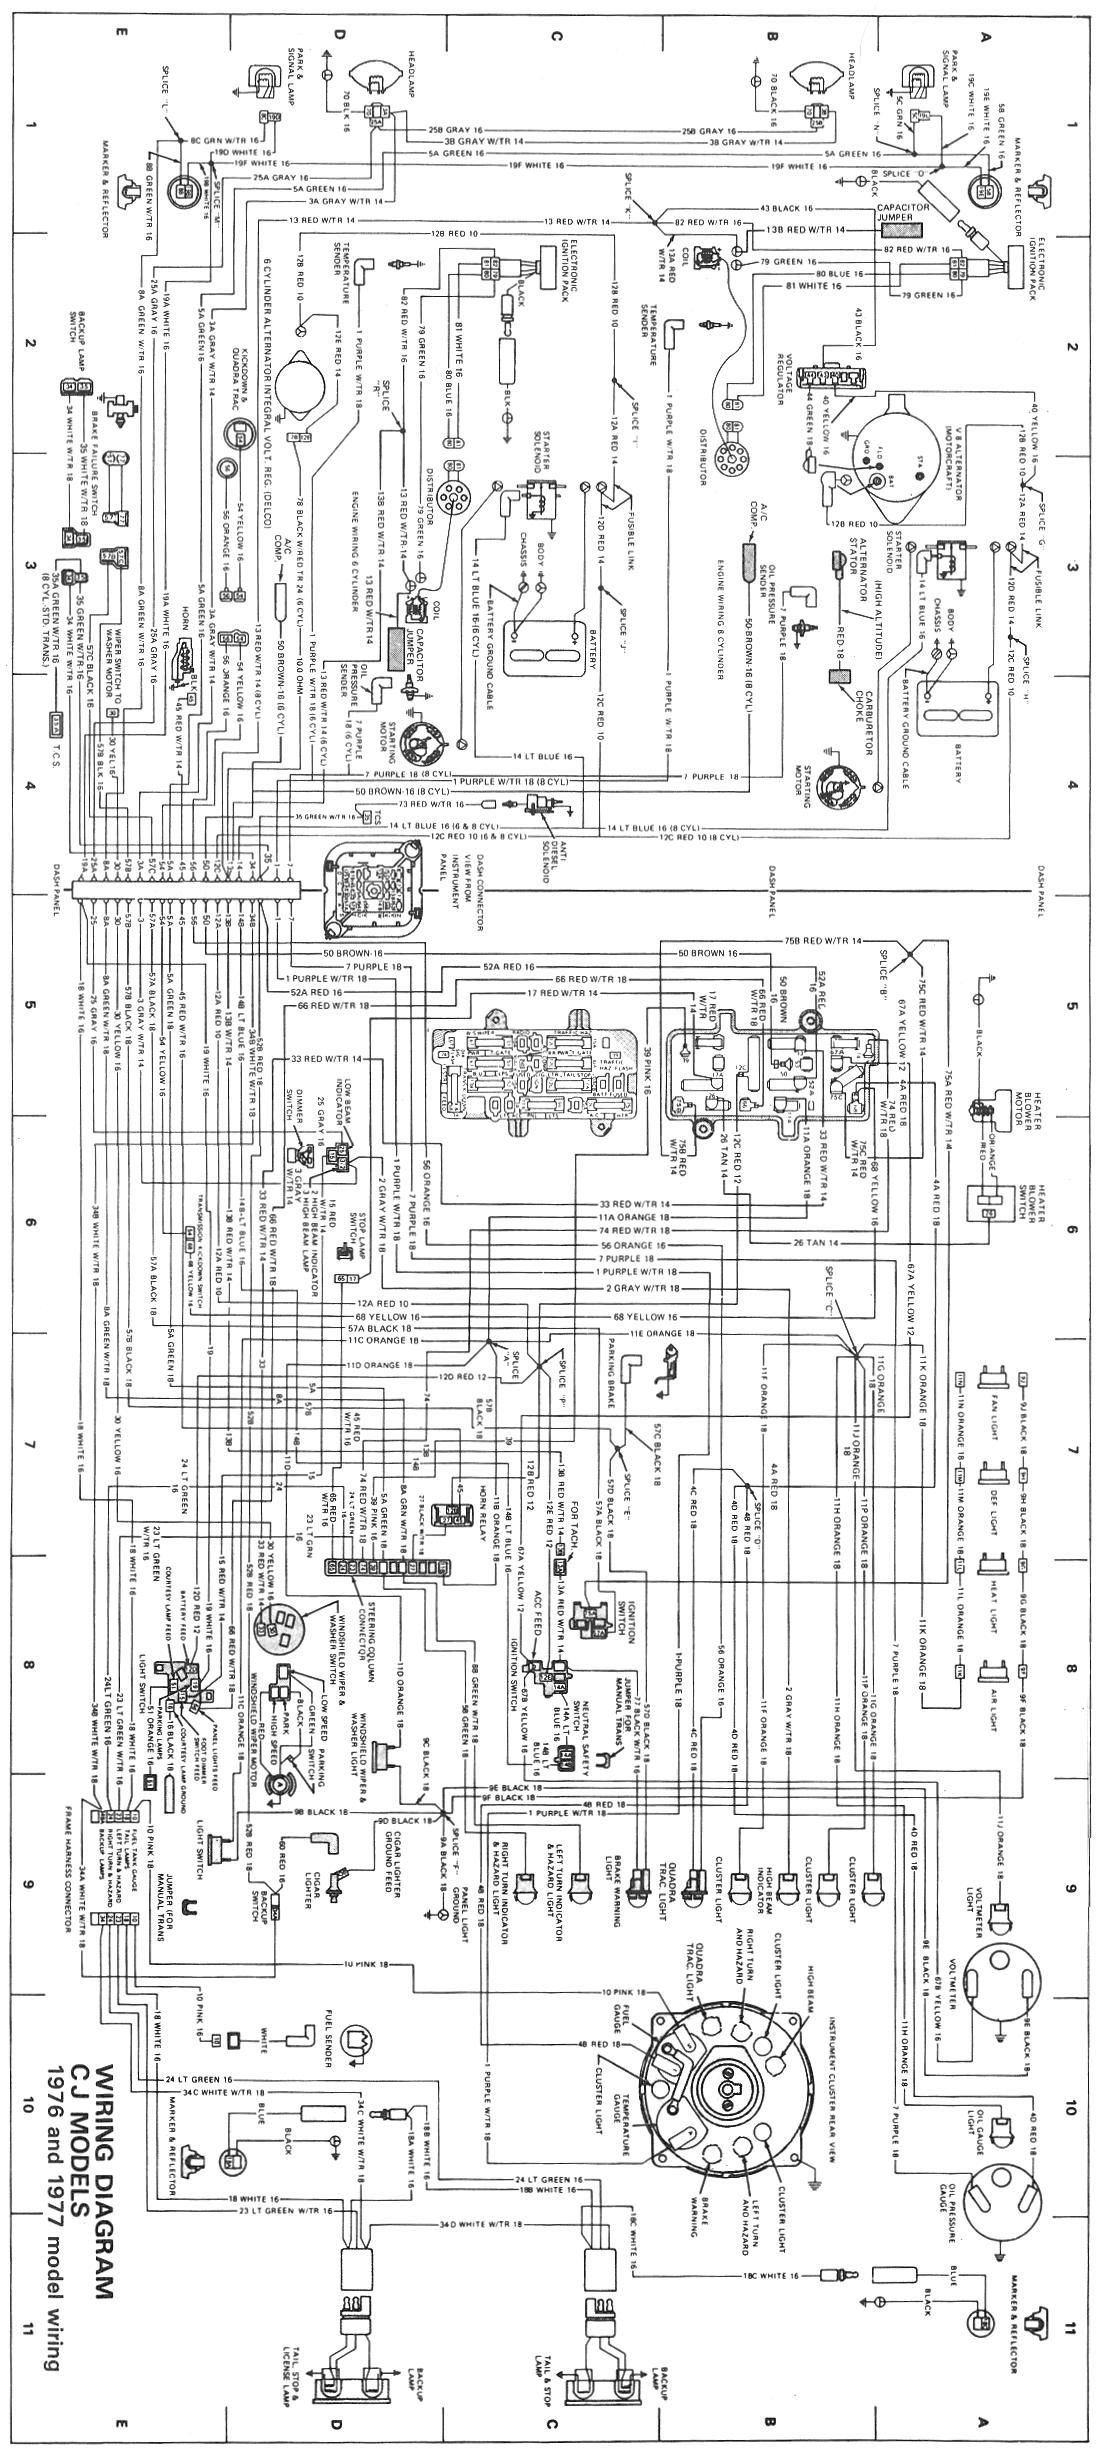 Pin By Ray Hochstetler On 1976 Jeep Cj5 Ideas Parts Etc Pinterest Wiring Diagrams And 1977 Cj Stuff Car Cj7